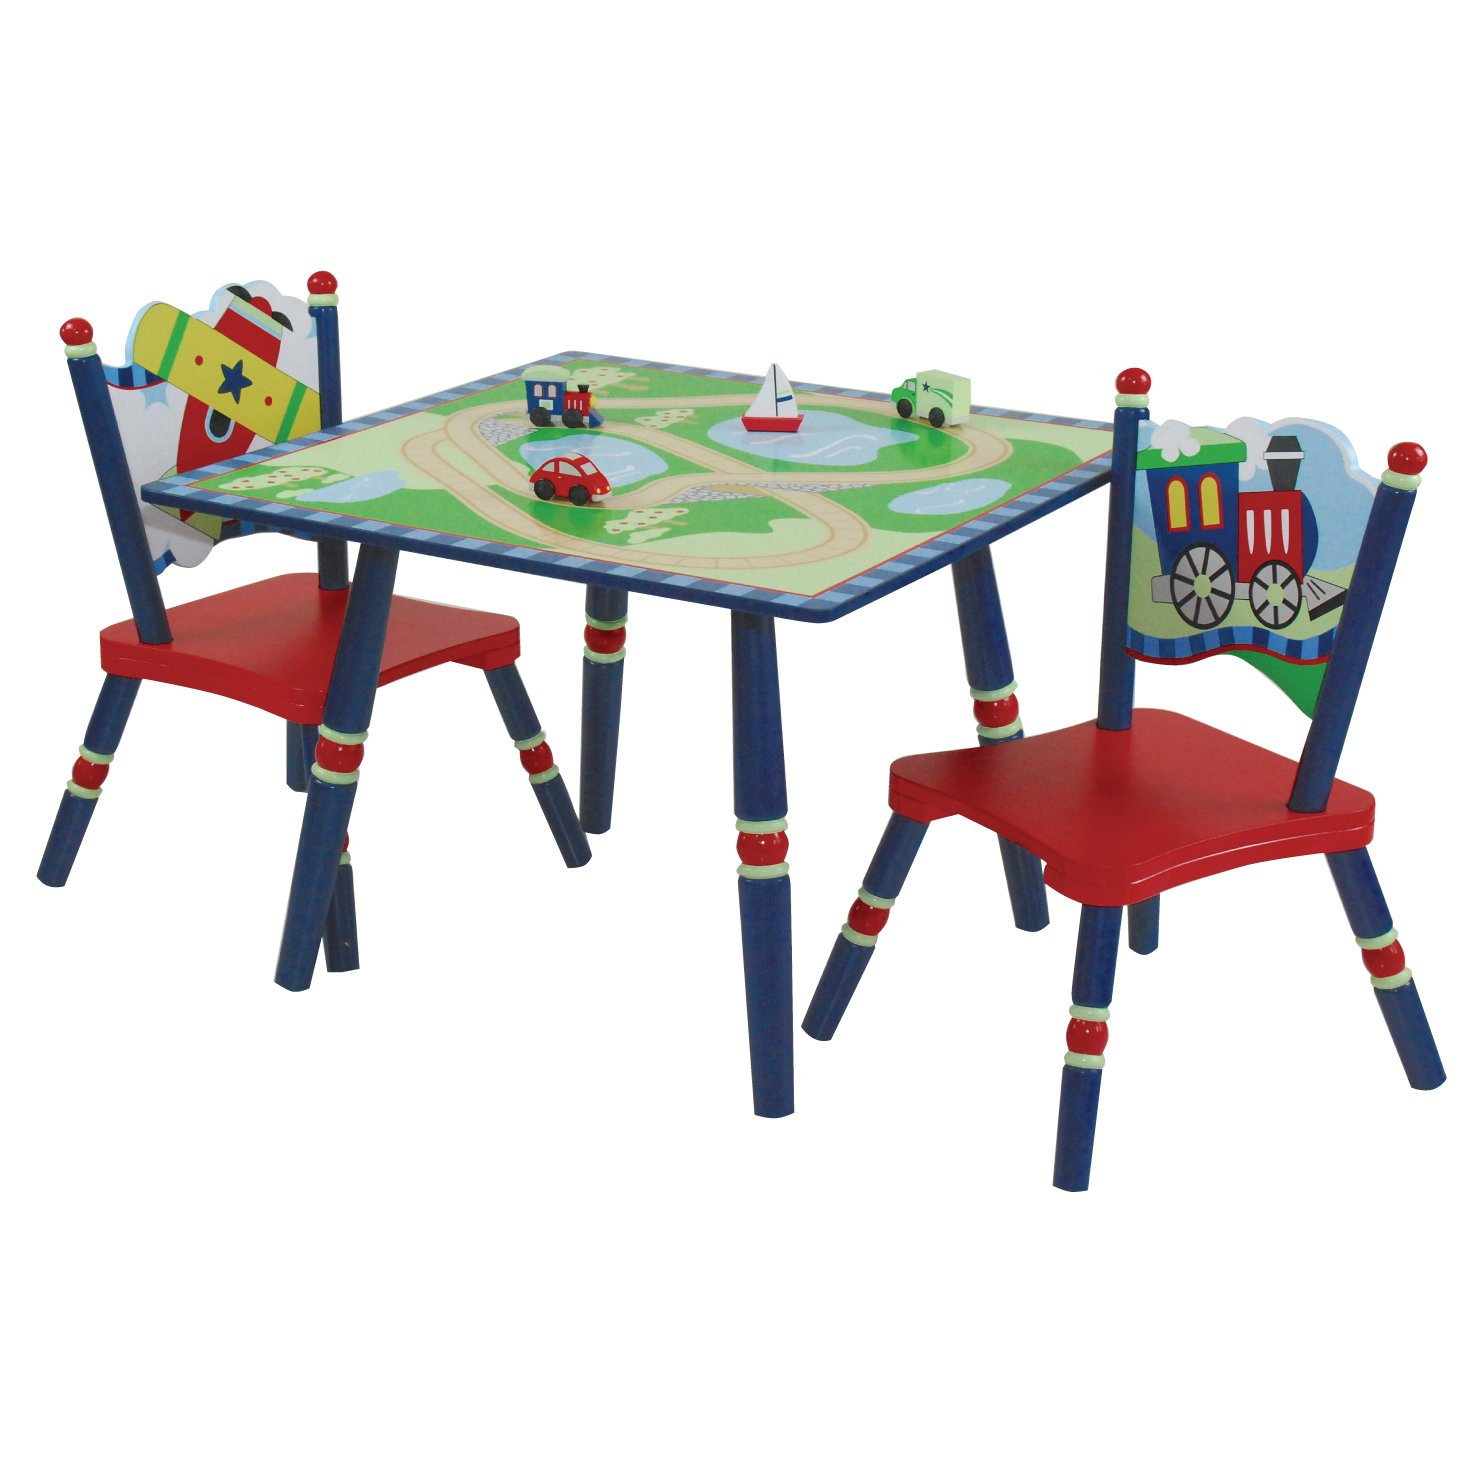 sc 1 st  Amazon.com & Amazon.com: Wildkin Gettinu0027 Around Table u0026 2 Chair Set: Toys u0026 Games